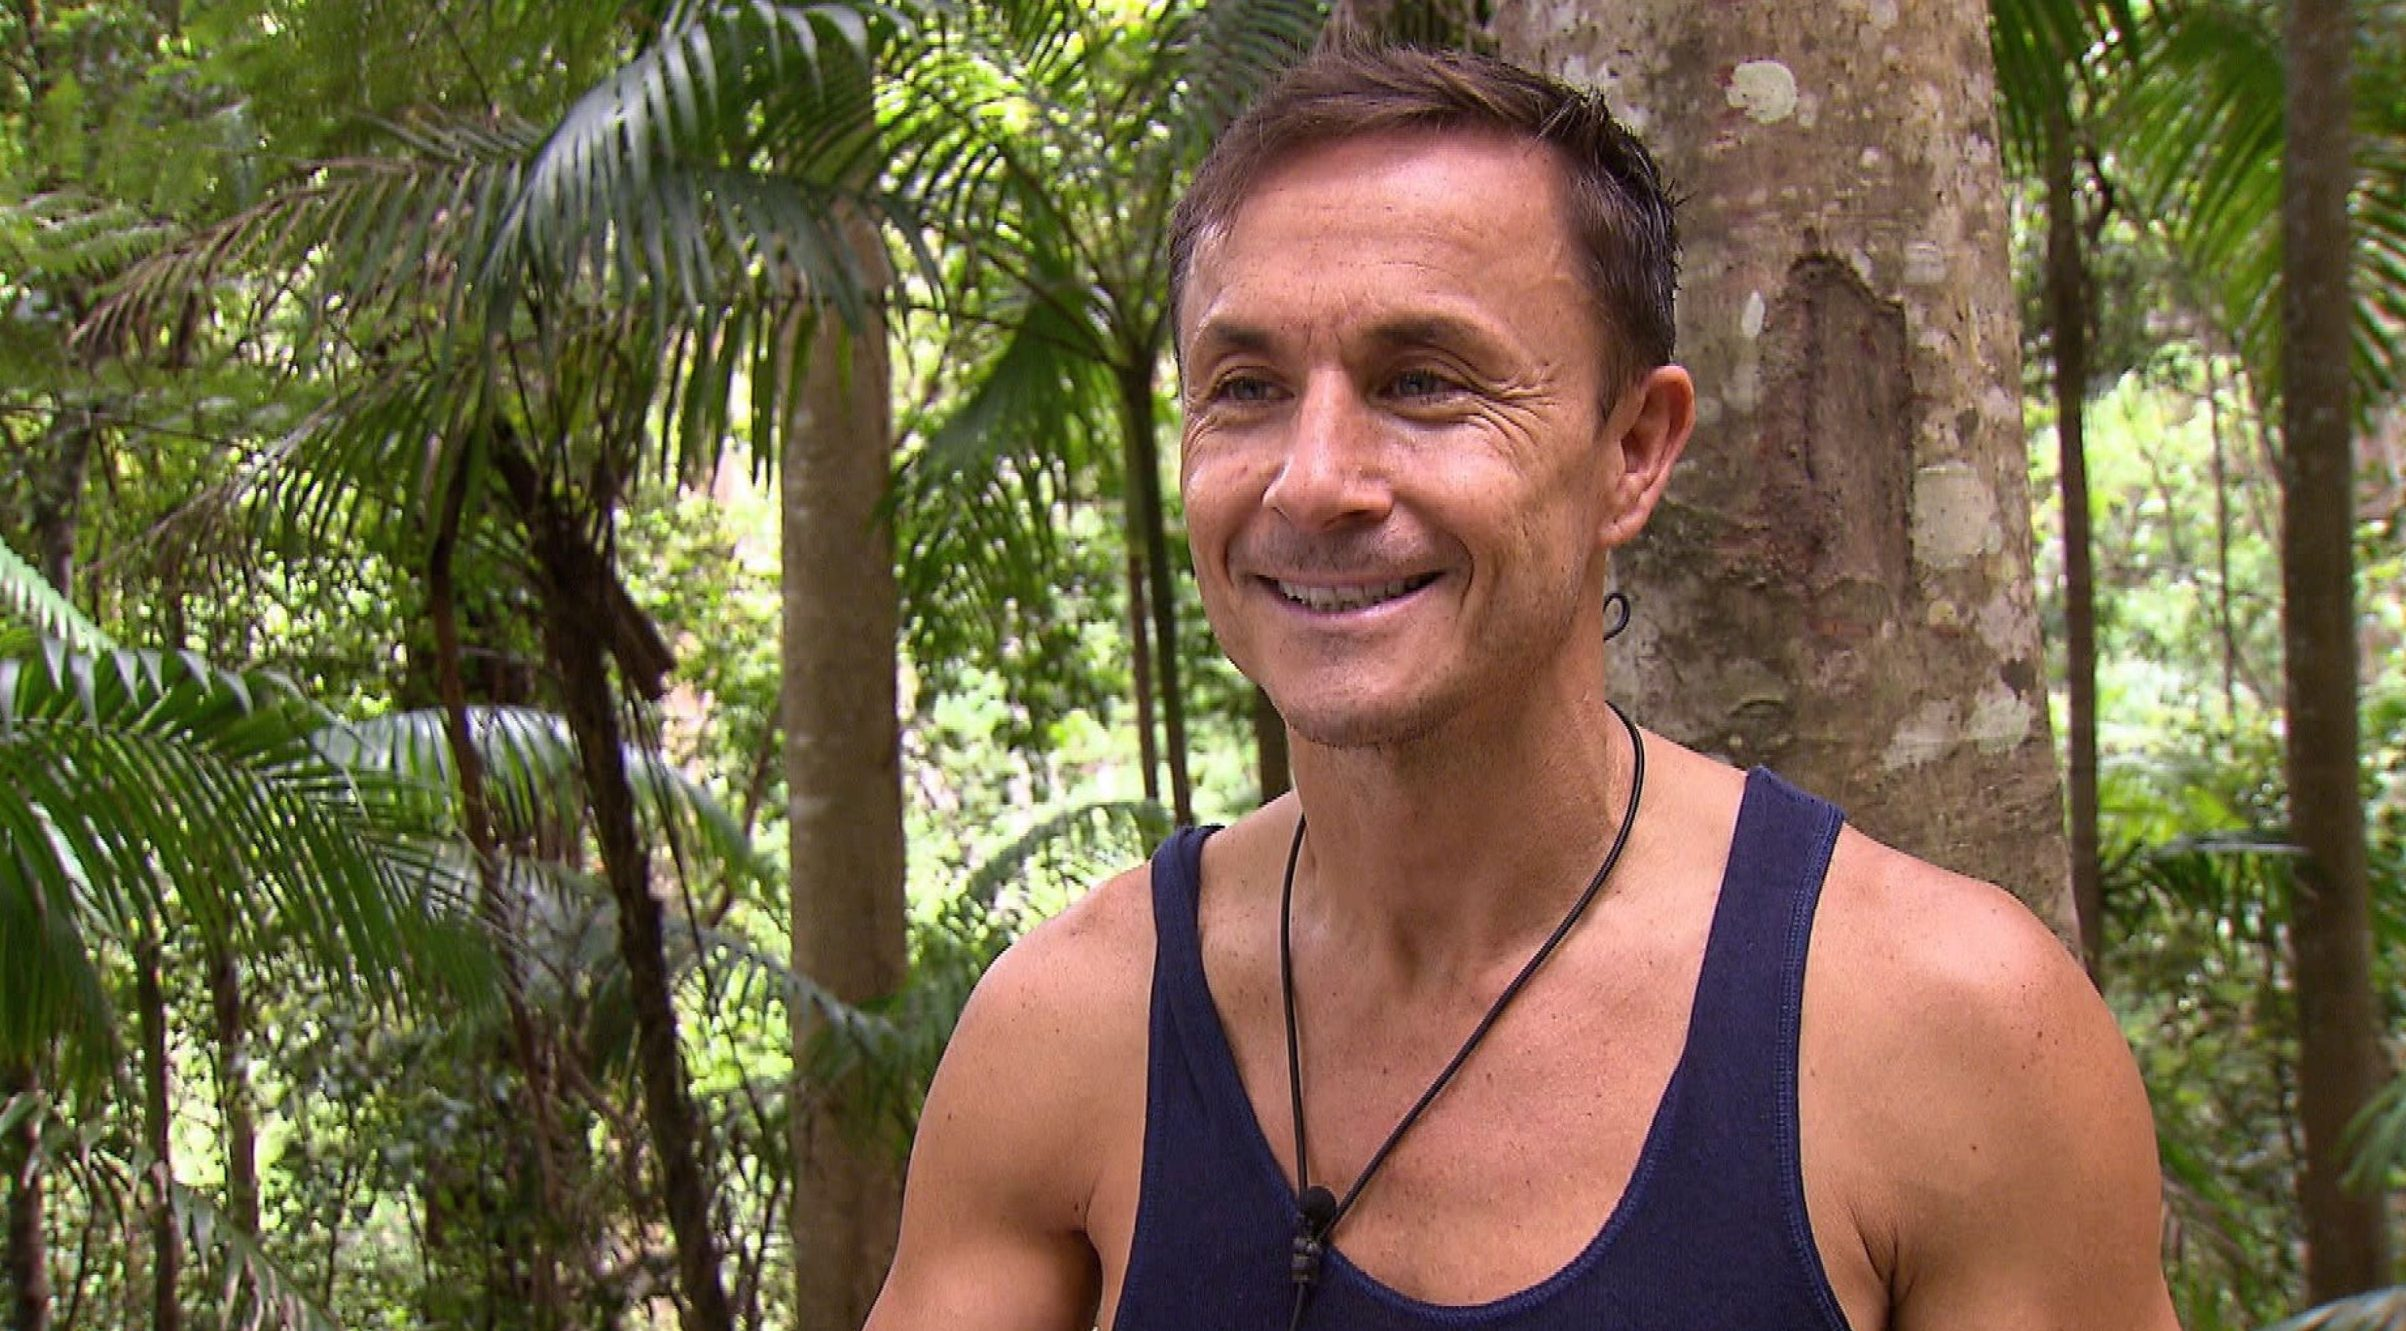 I'm A Celebrity's Dennis Wise claims he was edited to look like a bully: 'You don't hear or see everything'